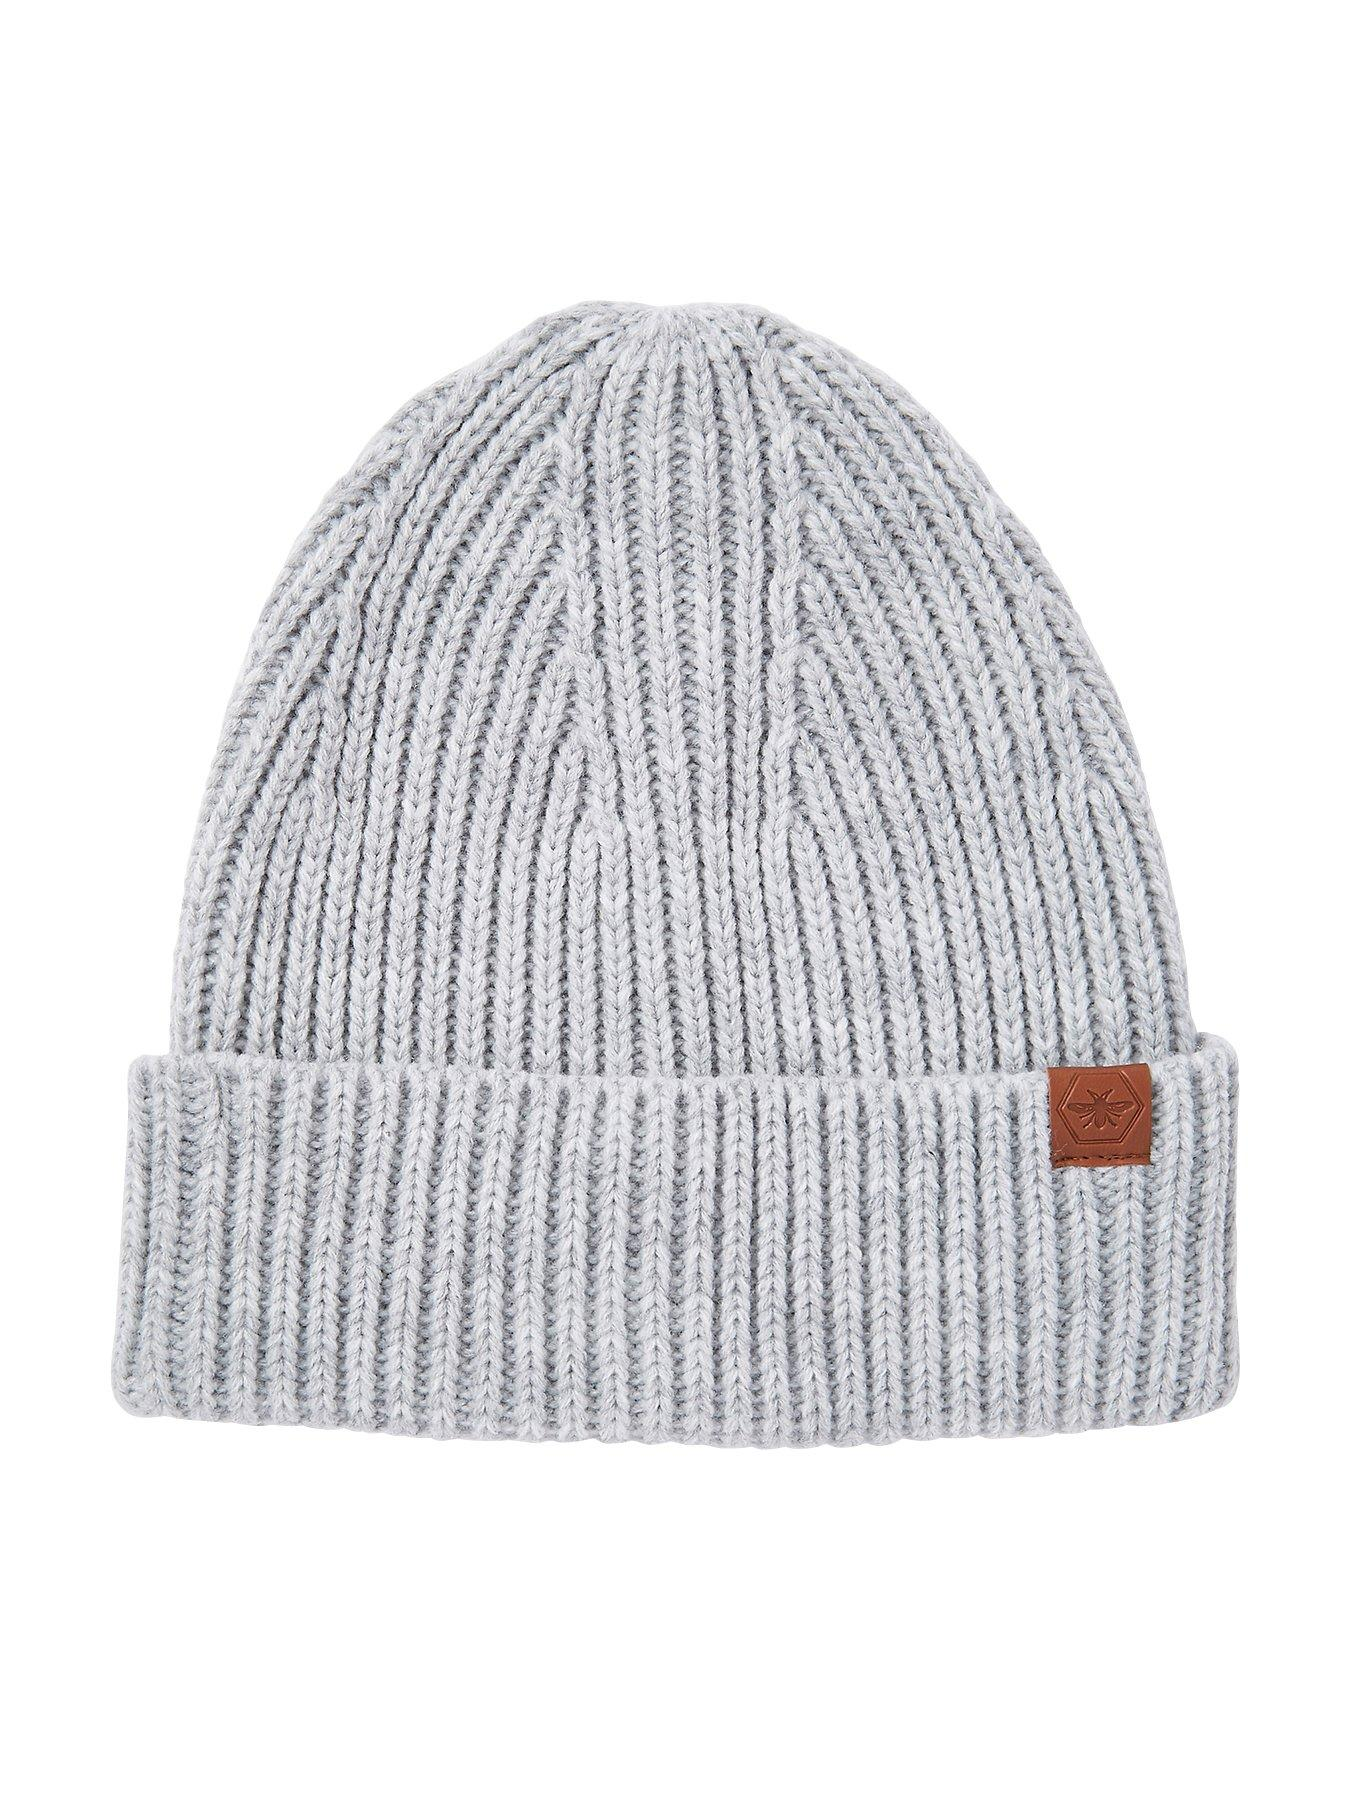 8748255e340d6 ... cheapest river island fisherman beanie d98dd 52778